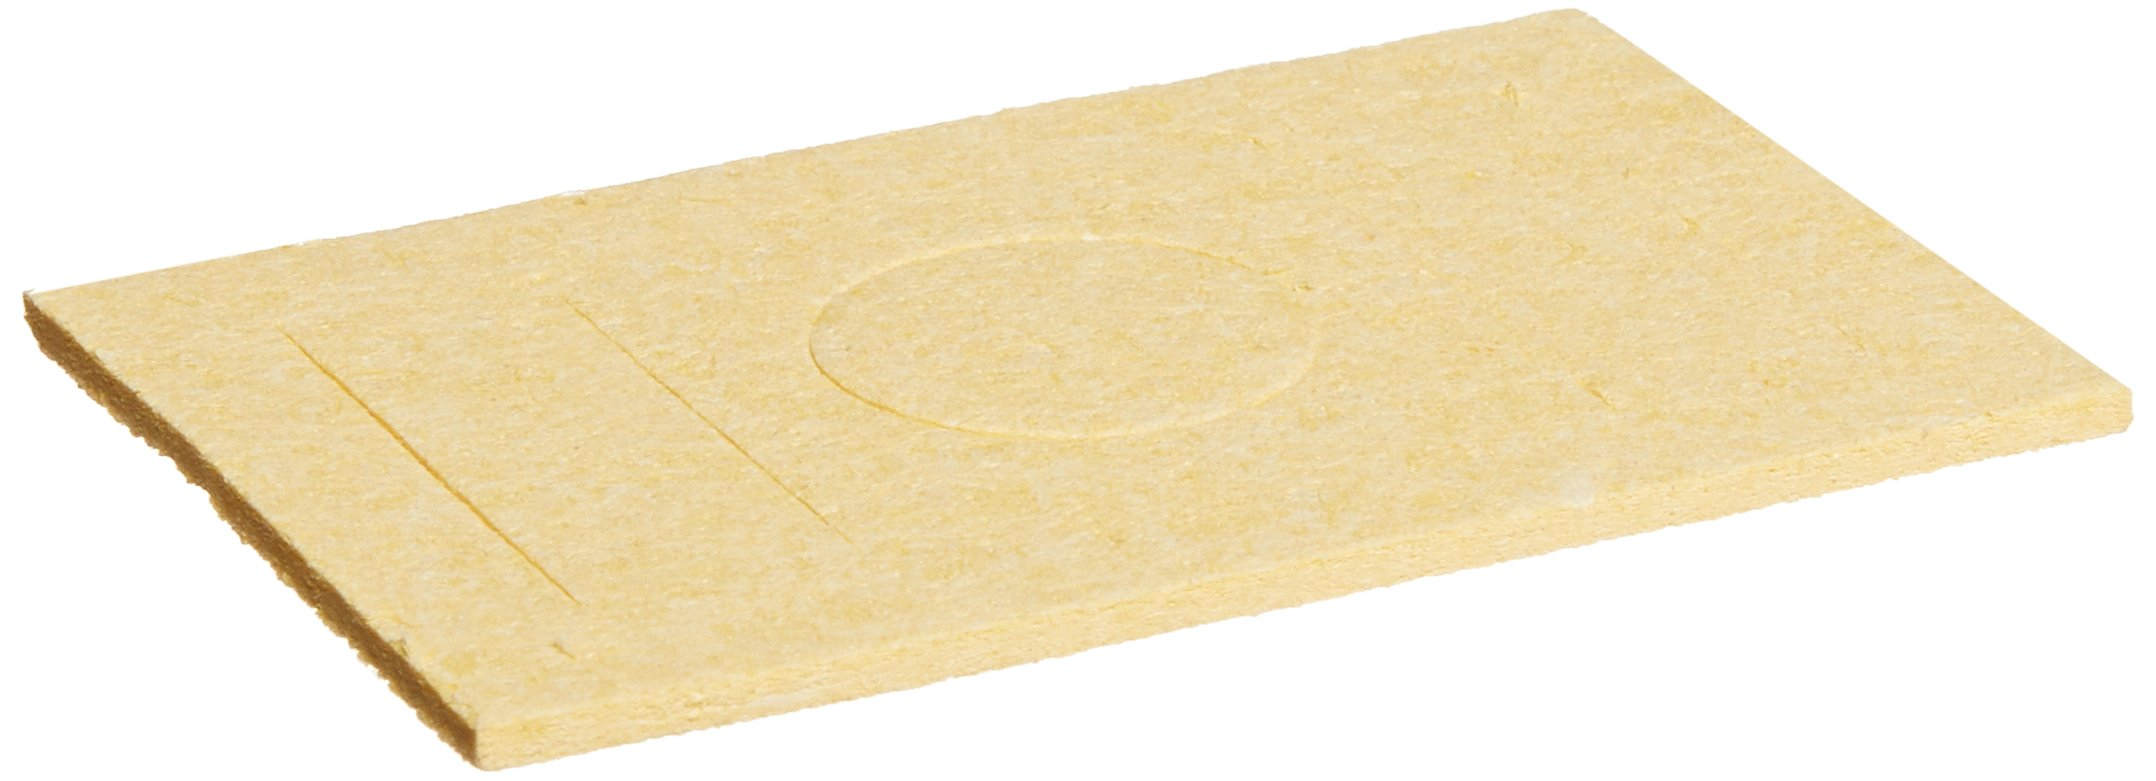 Metcal AC-Y10 Soldering Sponge for MX and MFR Rectangular work stand, Yellow (Pack of 10)